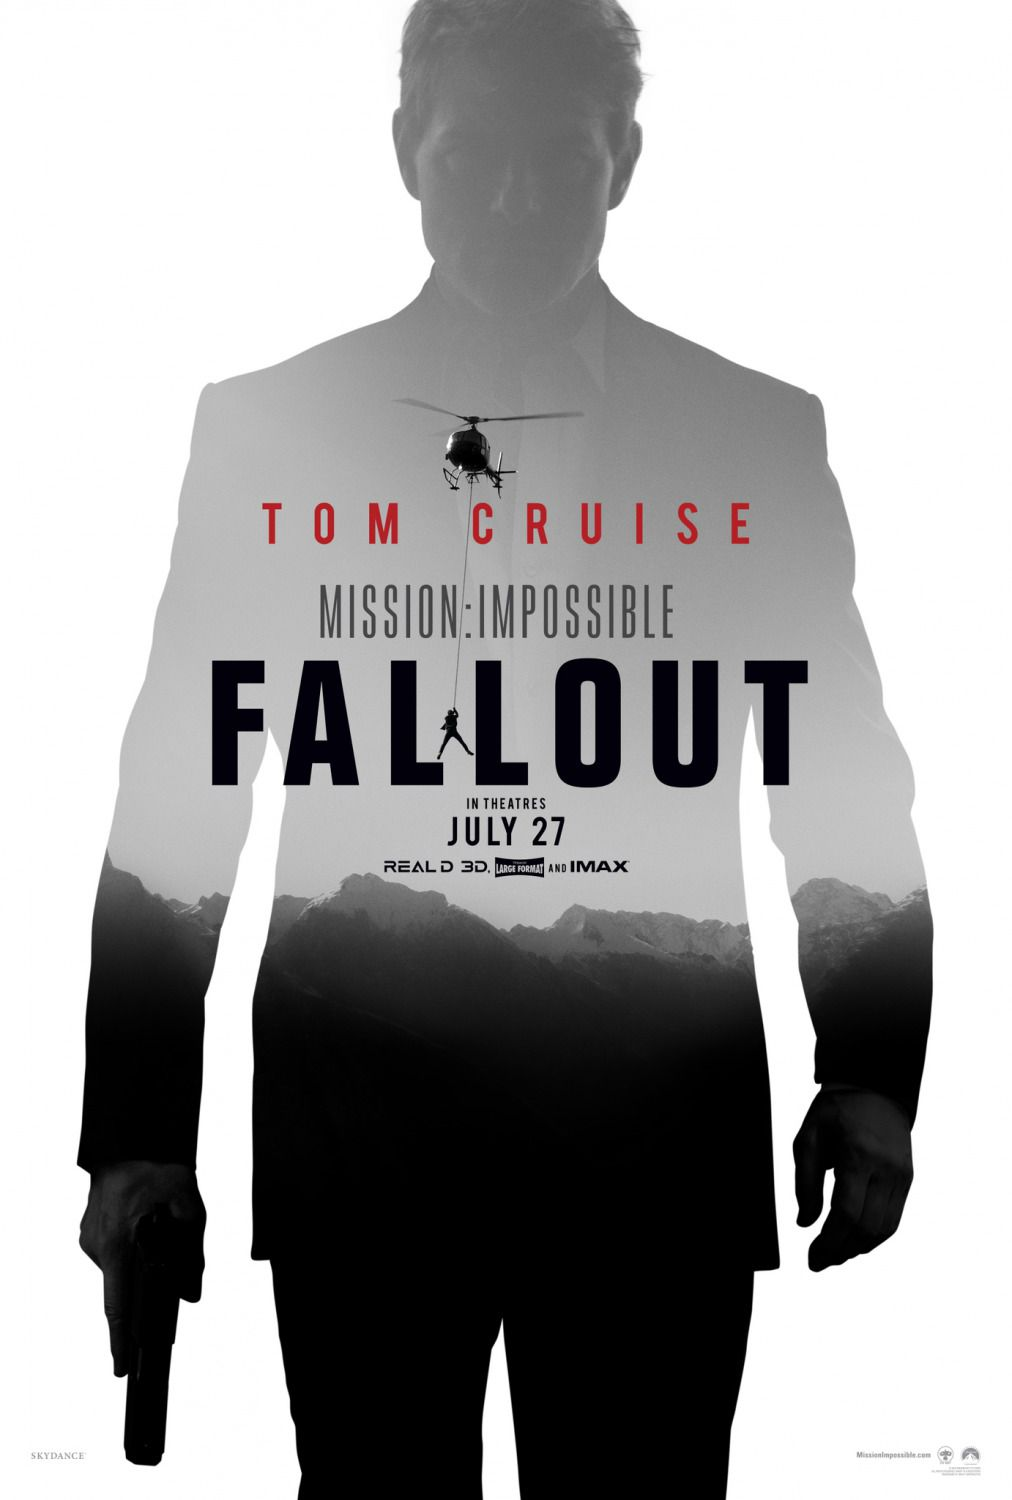 Mission Impossible Fallout - film poster 2018 Tom Cruise